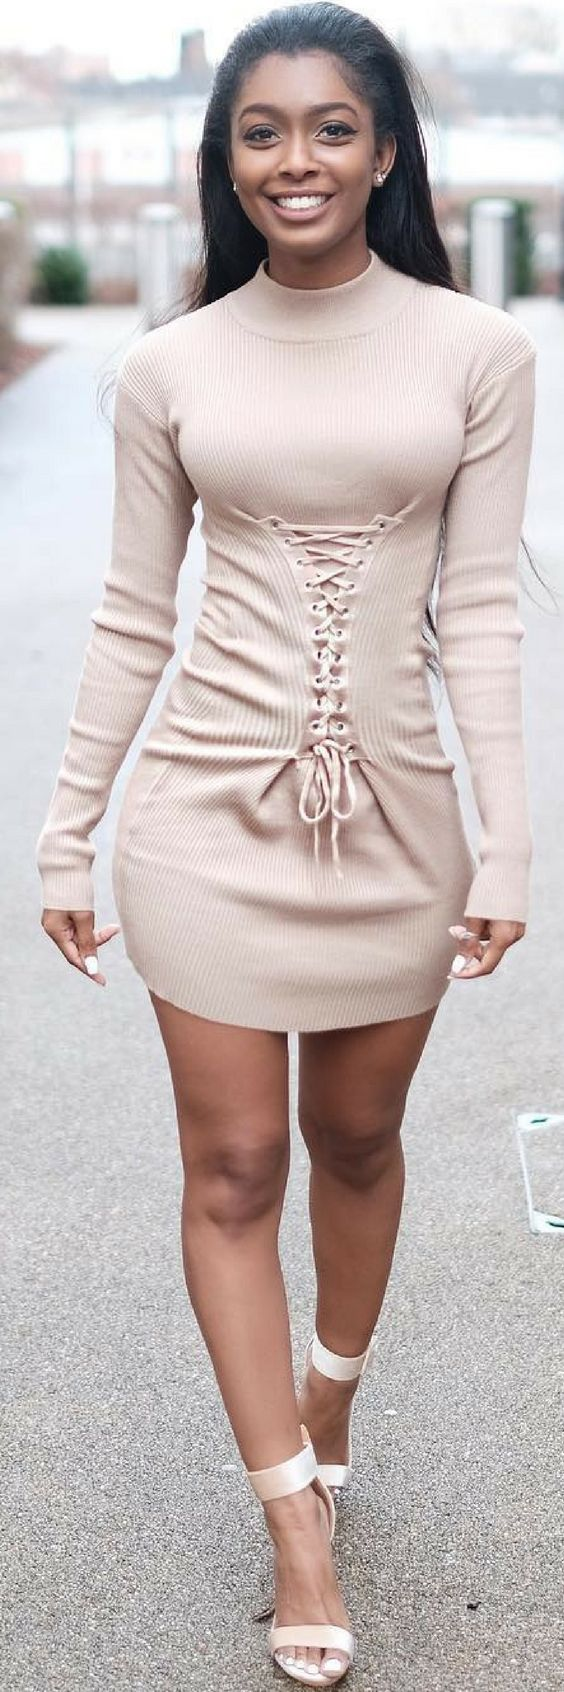 20 Of The Most Innovative Winter Outfits To Make You Sensational https://ecstasymodels.blog/2018/01/02/20-innovative-winter-outfits-make-sensational/?utm_campaign=coschedule&utm_source=pinterest&utm_medium=Ecstasy%20Models%20-%20Womens%20Fashion%20and%20Streetstyle&utm_content=20%20Of%20The%20Most%20Innovative%20Winter%20Outfits%20To%20Make%20You%20Sensational